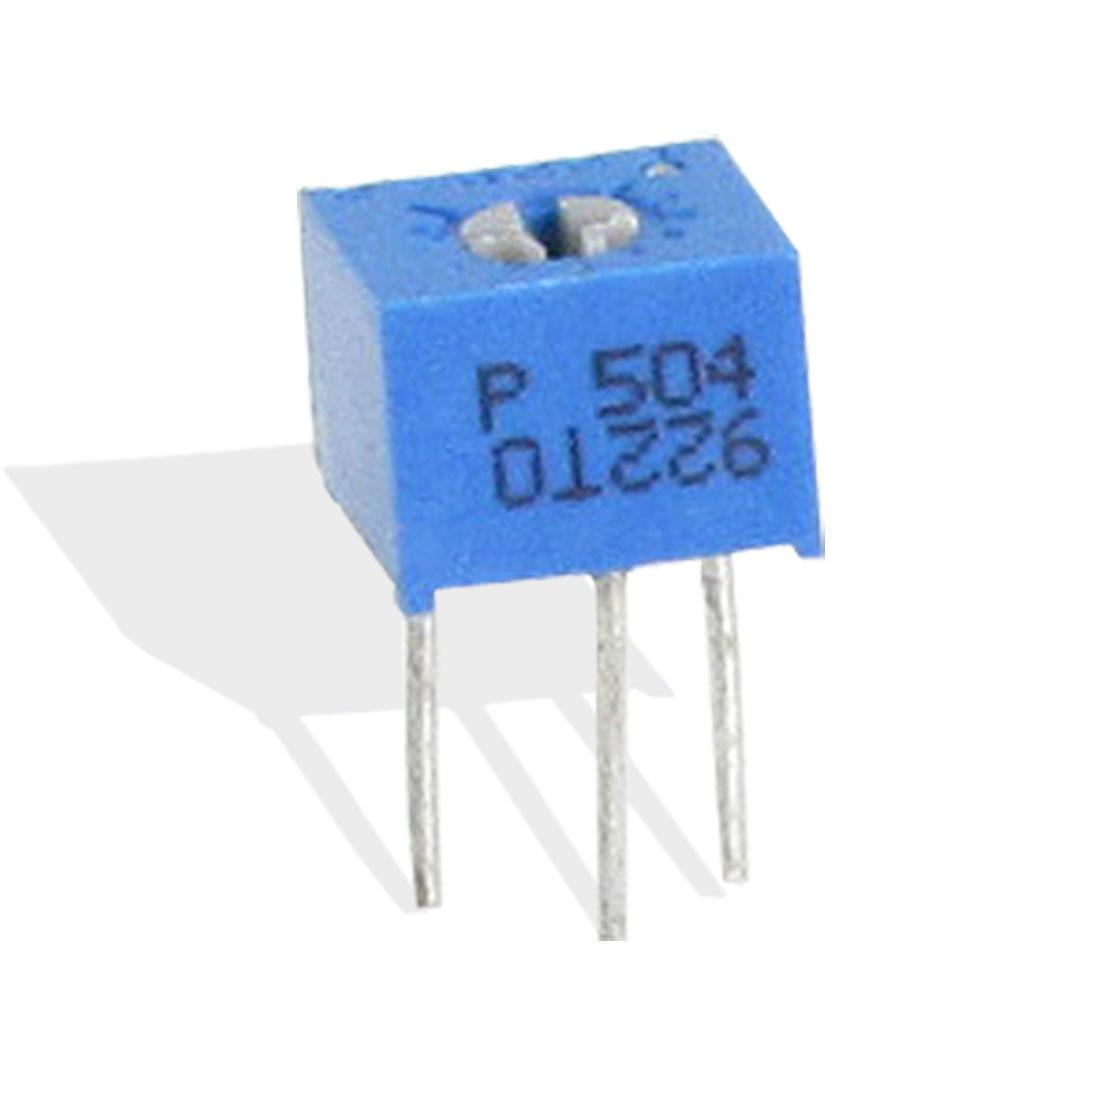 5 x 500K ohm Top Adjustment 500V DC Cermet Variable Resistors